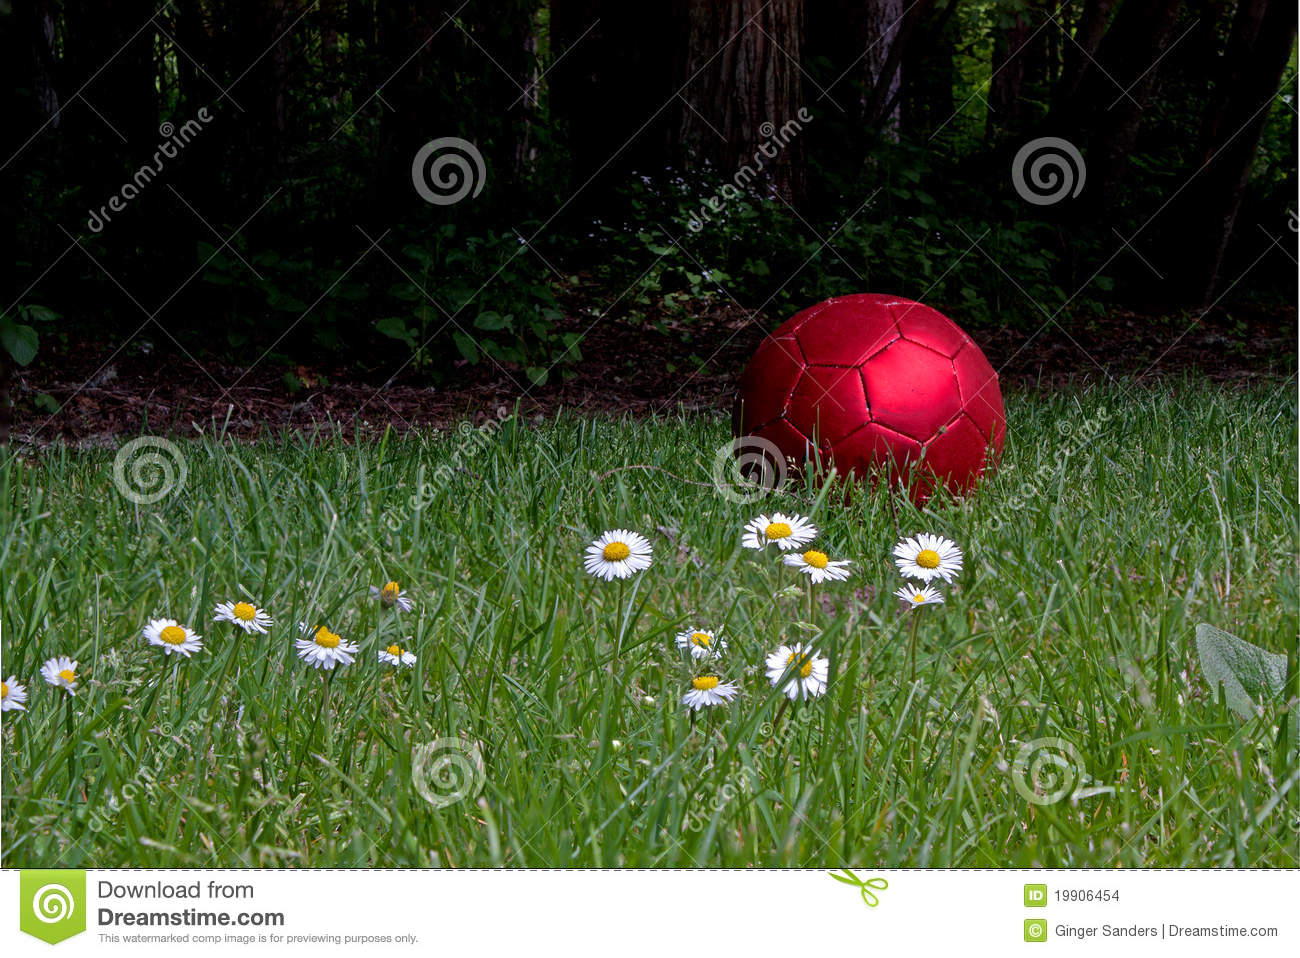 Shiny Red Soccer Ball With Daisies